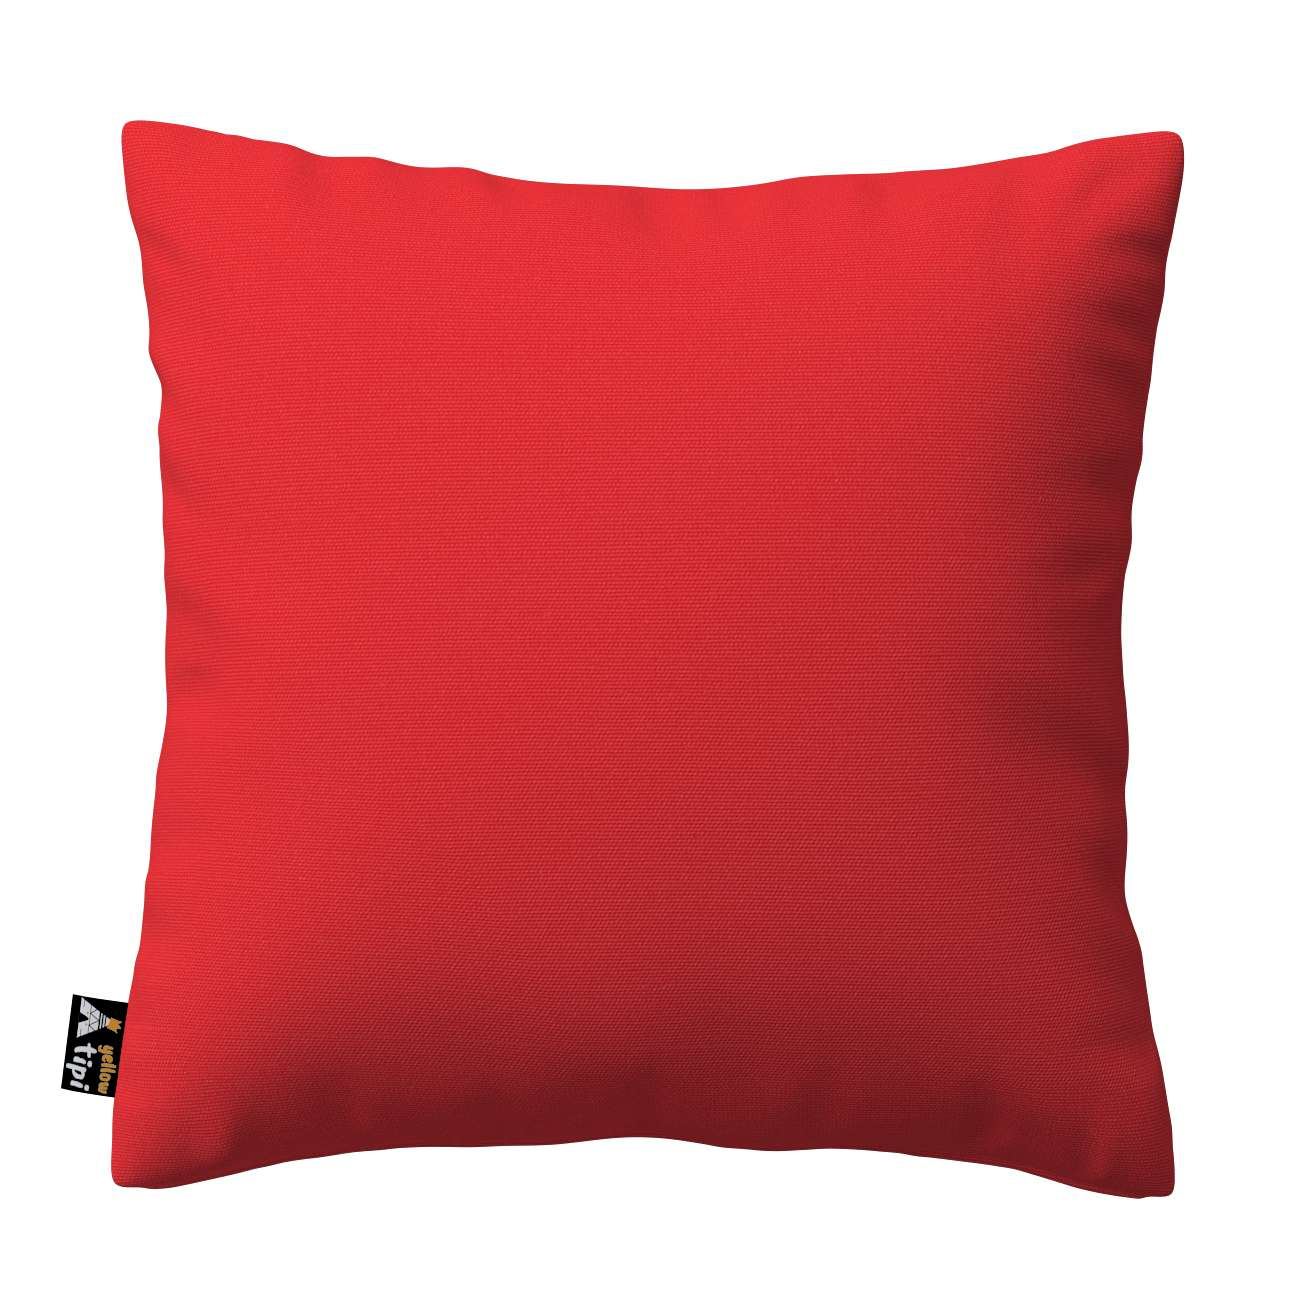 Milly cushion cover in collection Happiness, fabric: 133-43